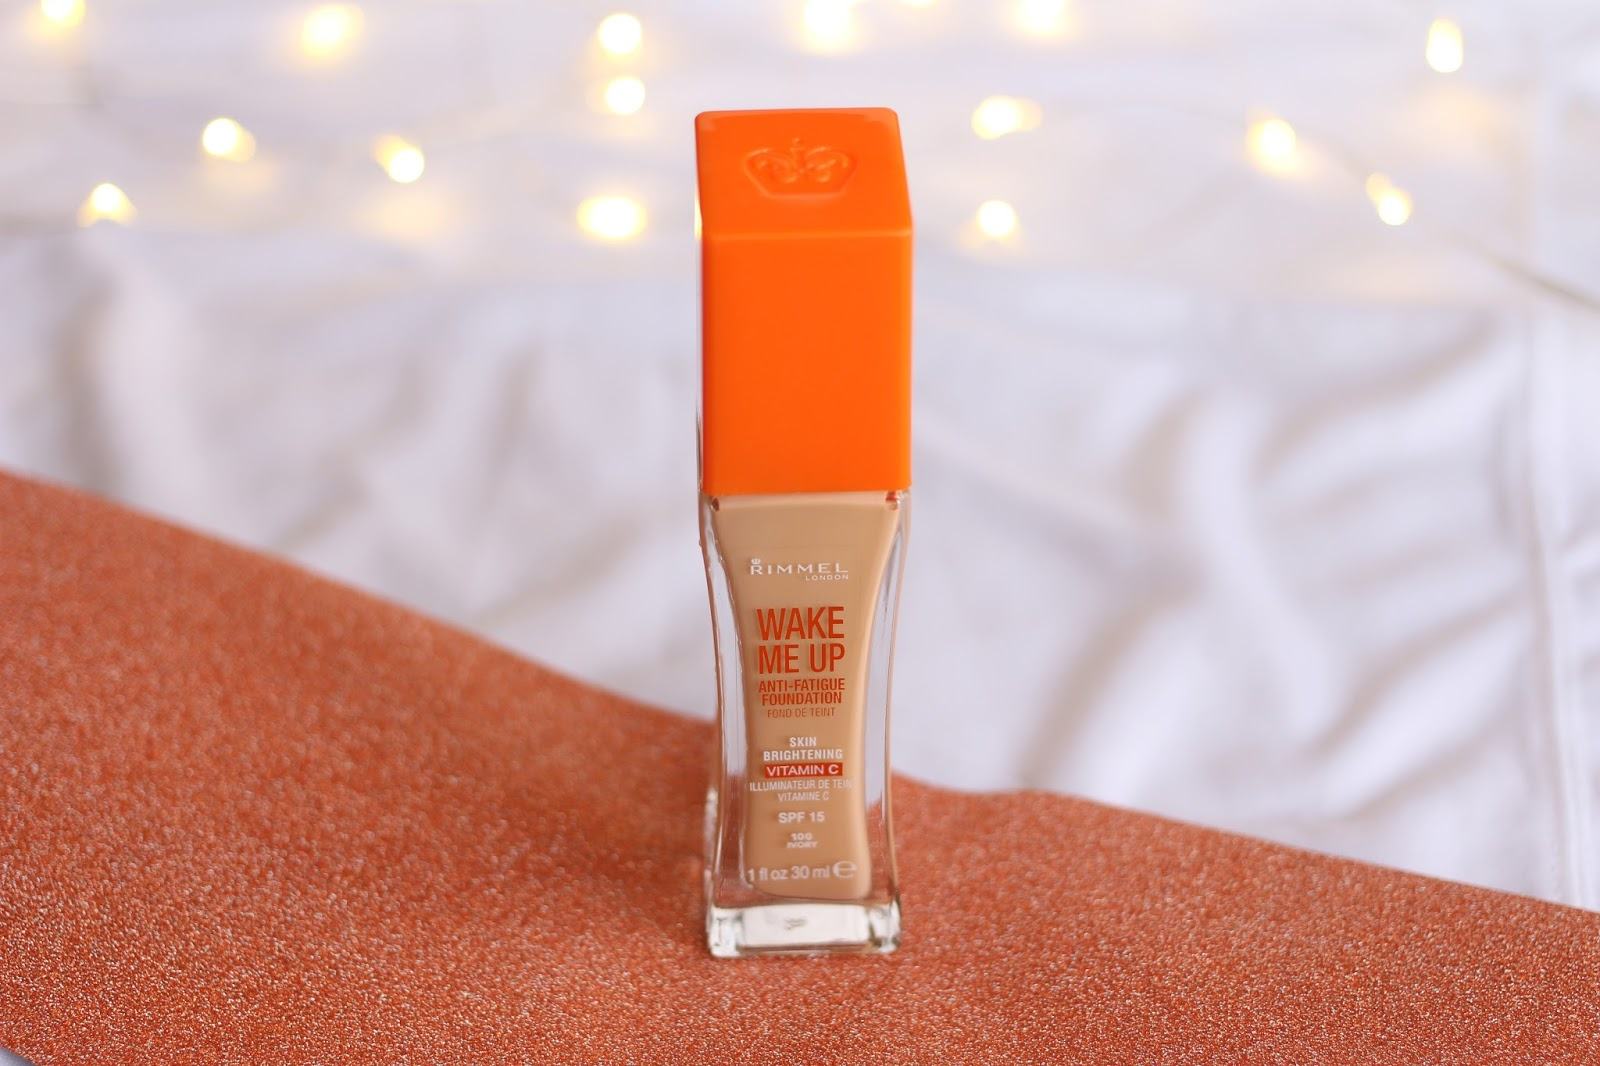 Rimmel Wake Me Up Foundation Review